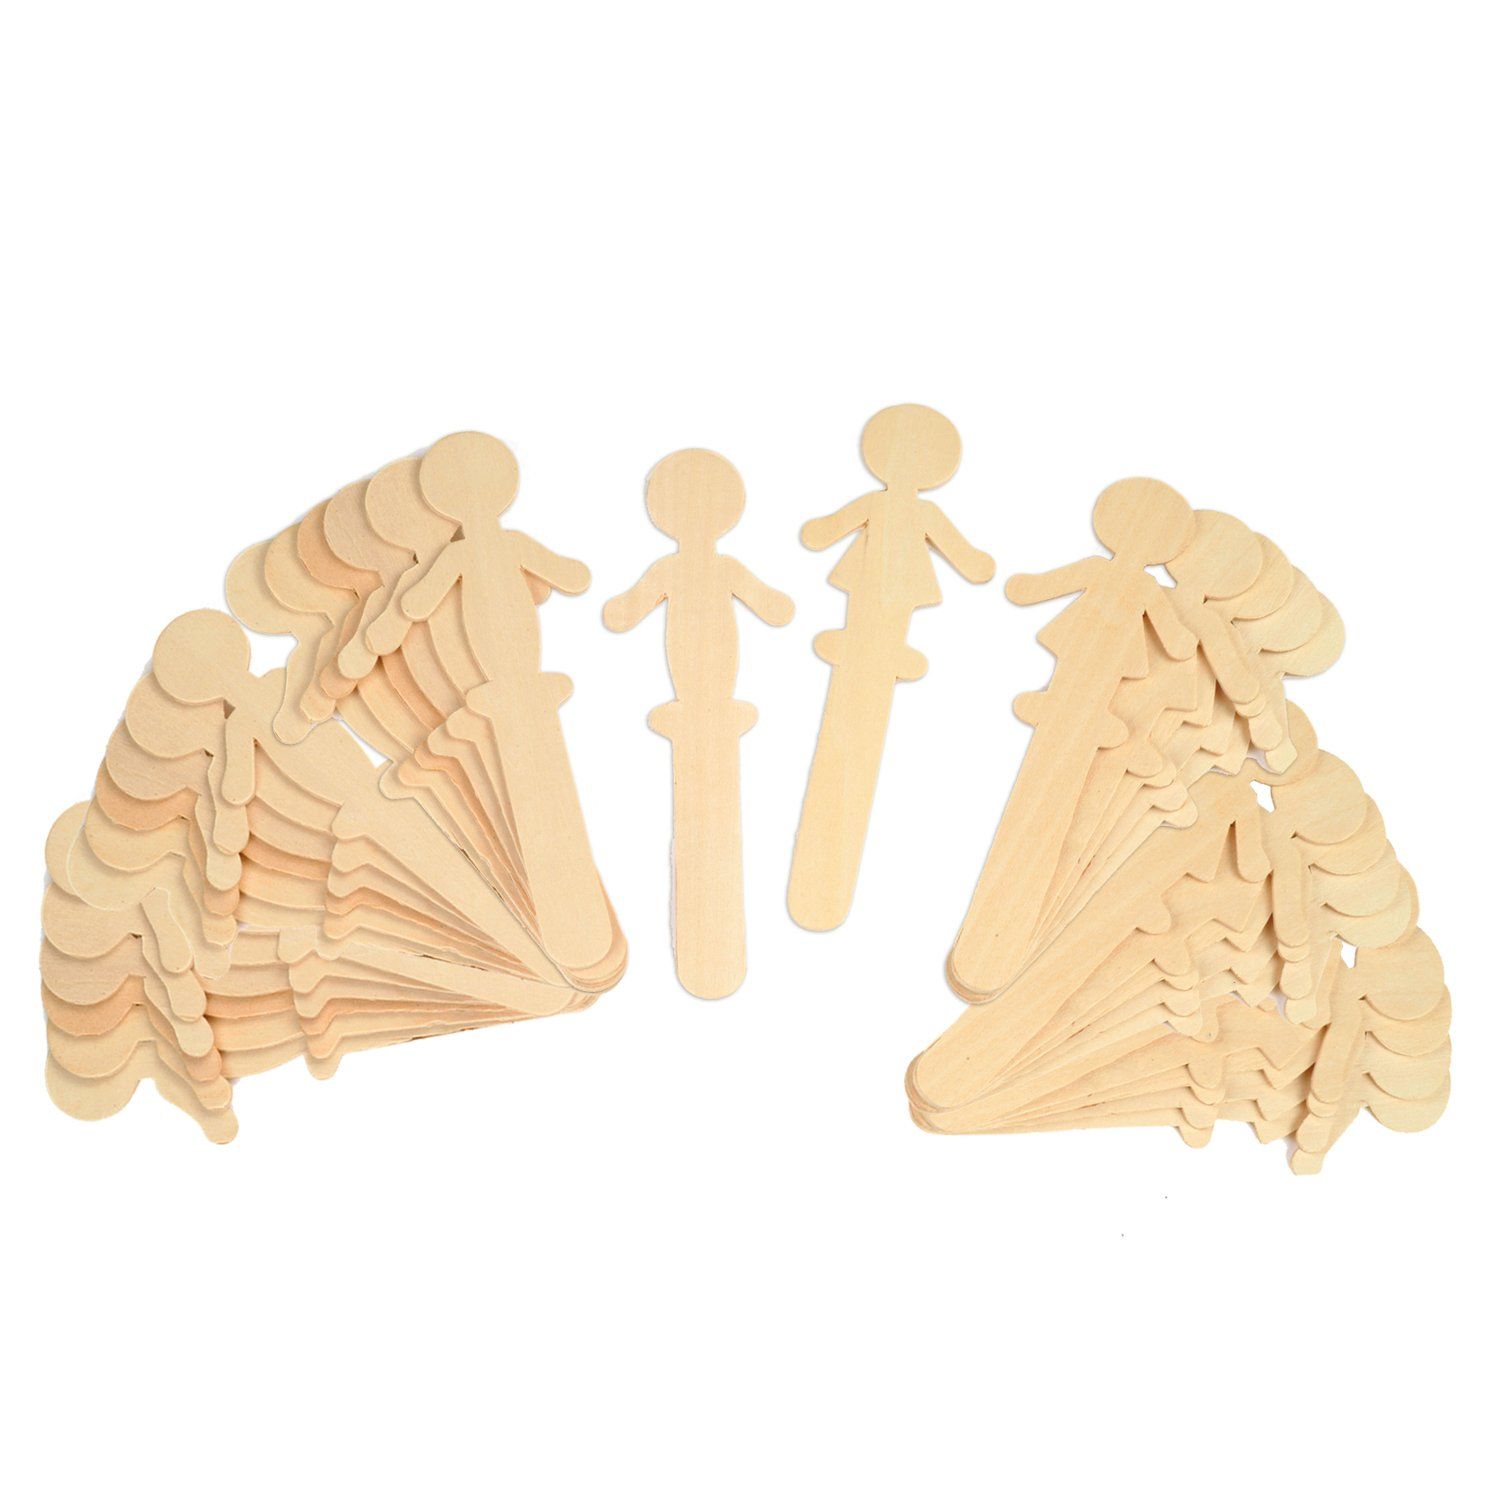 Creativity Street Natural Wood Craft Sticks, People, 5-1/2 Inches Tall, 36 Per Pack, 6 Packs